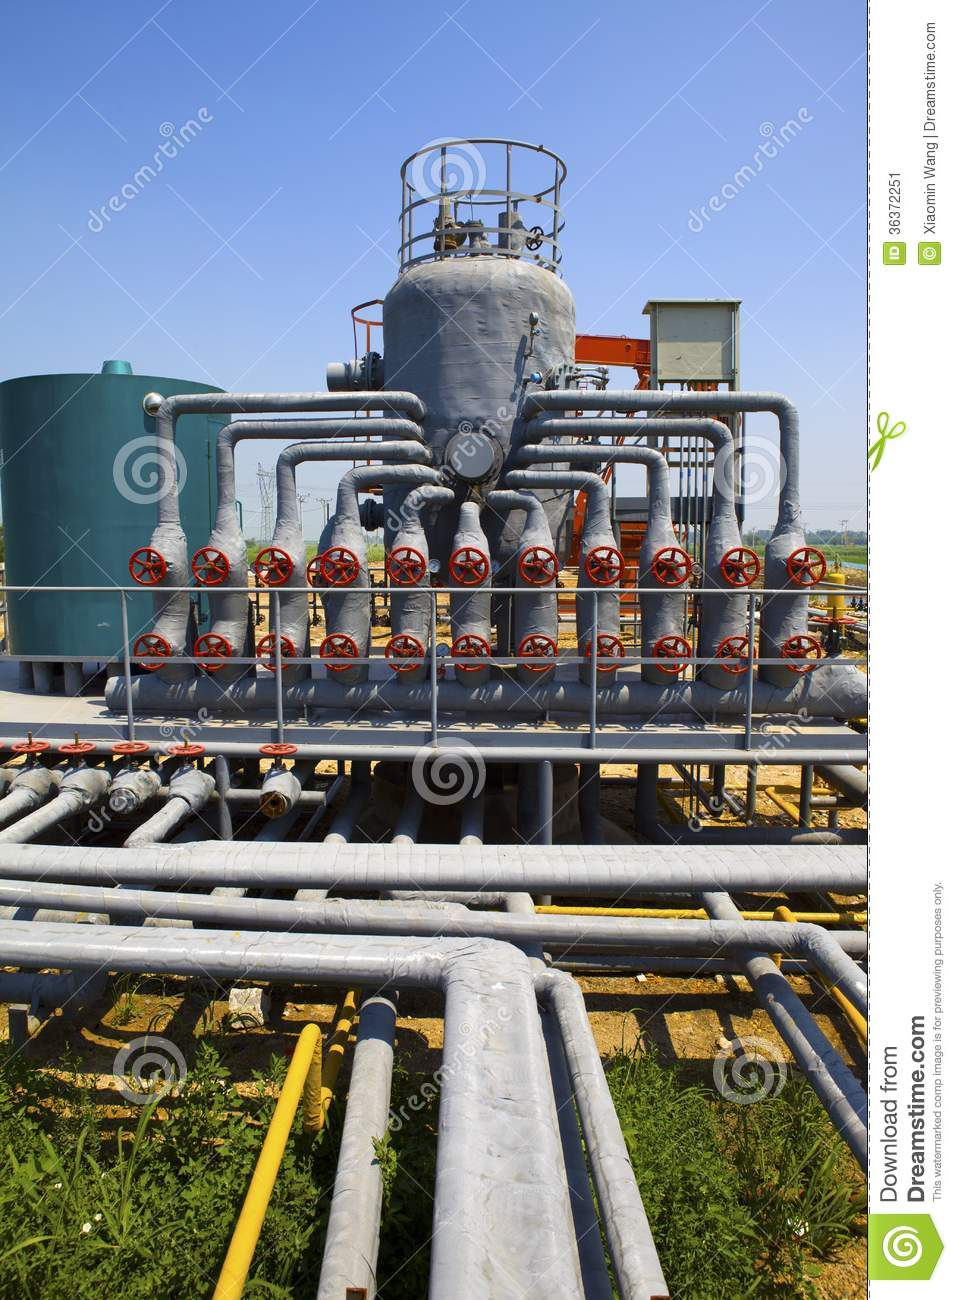 Oil And Gas Processing Plant Stock Image - Image: 36372251